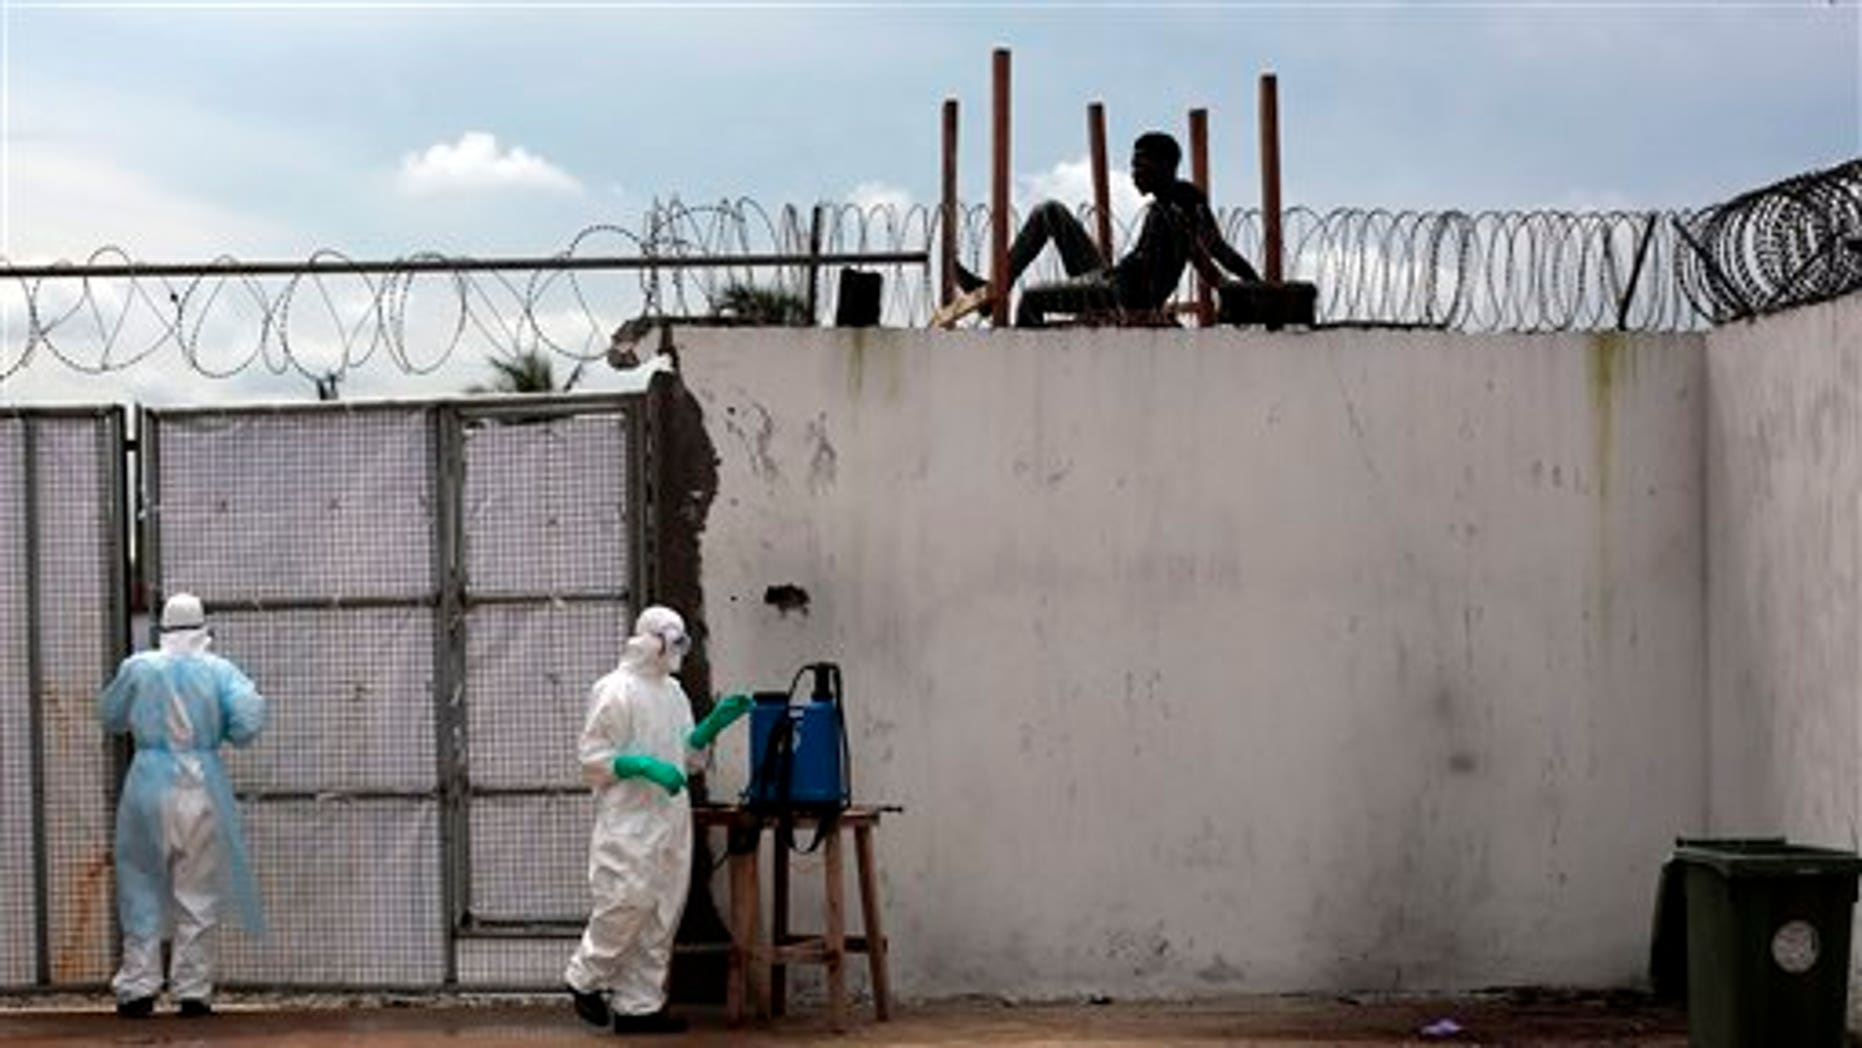 In this Friday, Sept. 26, 2014 file photo, health workers stand outside the Island Clinic Ebola isolation and treatment center in Monrovia, Liberia. (AP Photo/Jerome Delay, File)